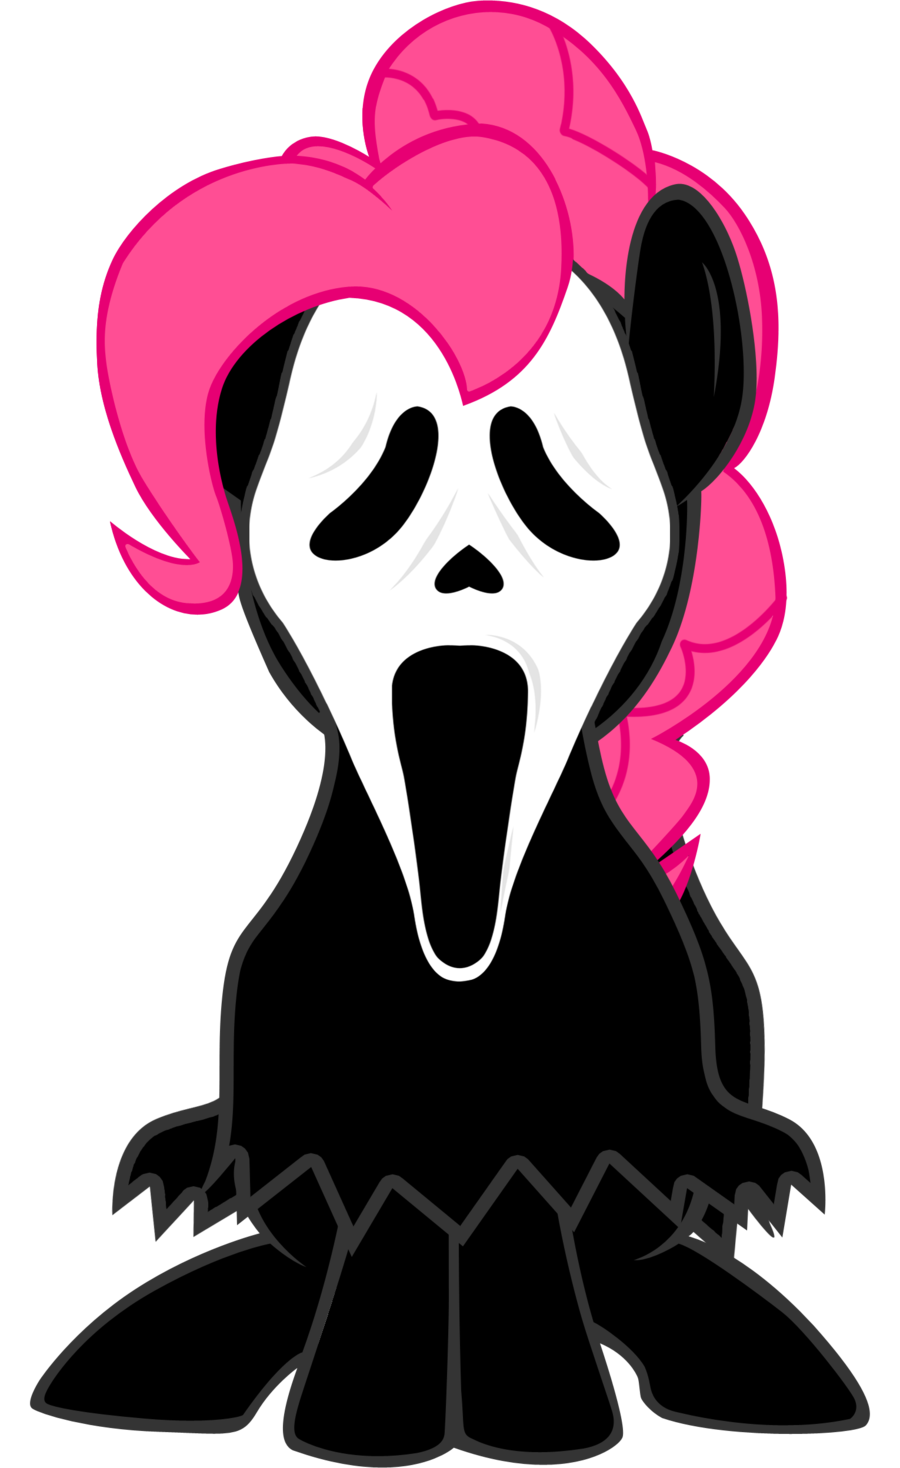 Scary halloween clipart free clip art free library Spooky Halloween Clipart at GetDrawings.com | Free for personal use ... clip art free library